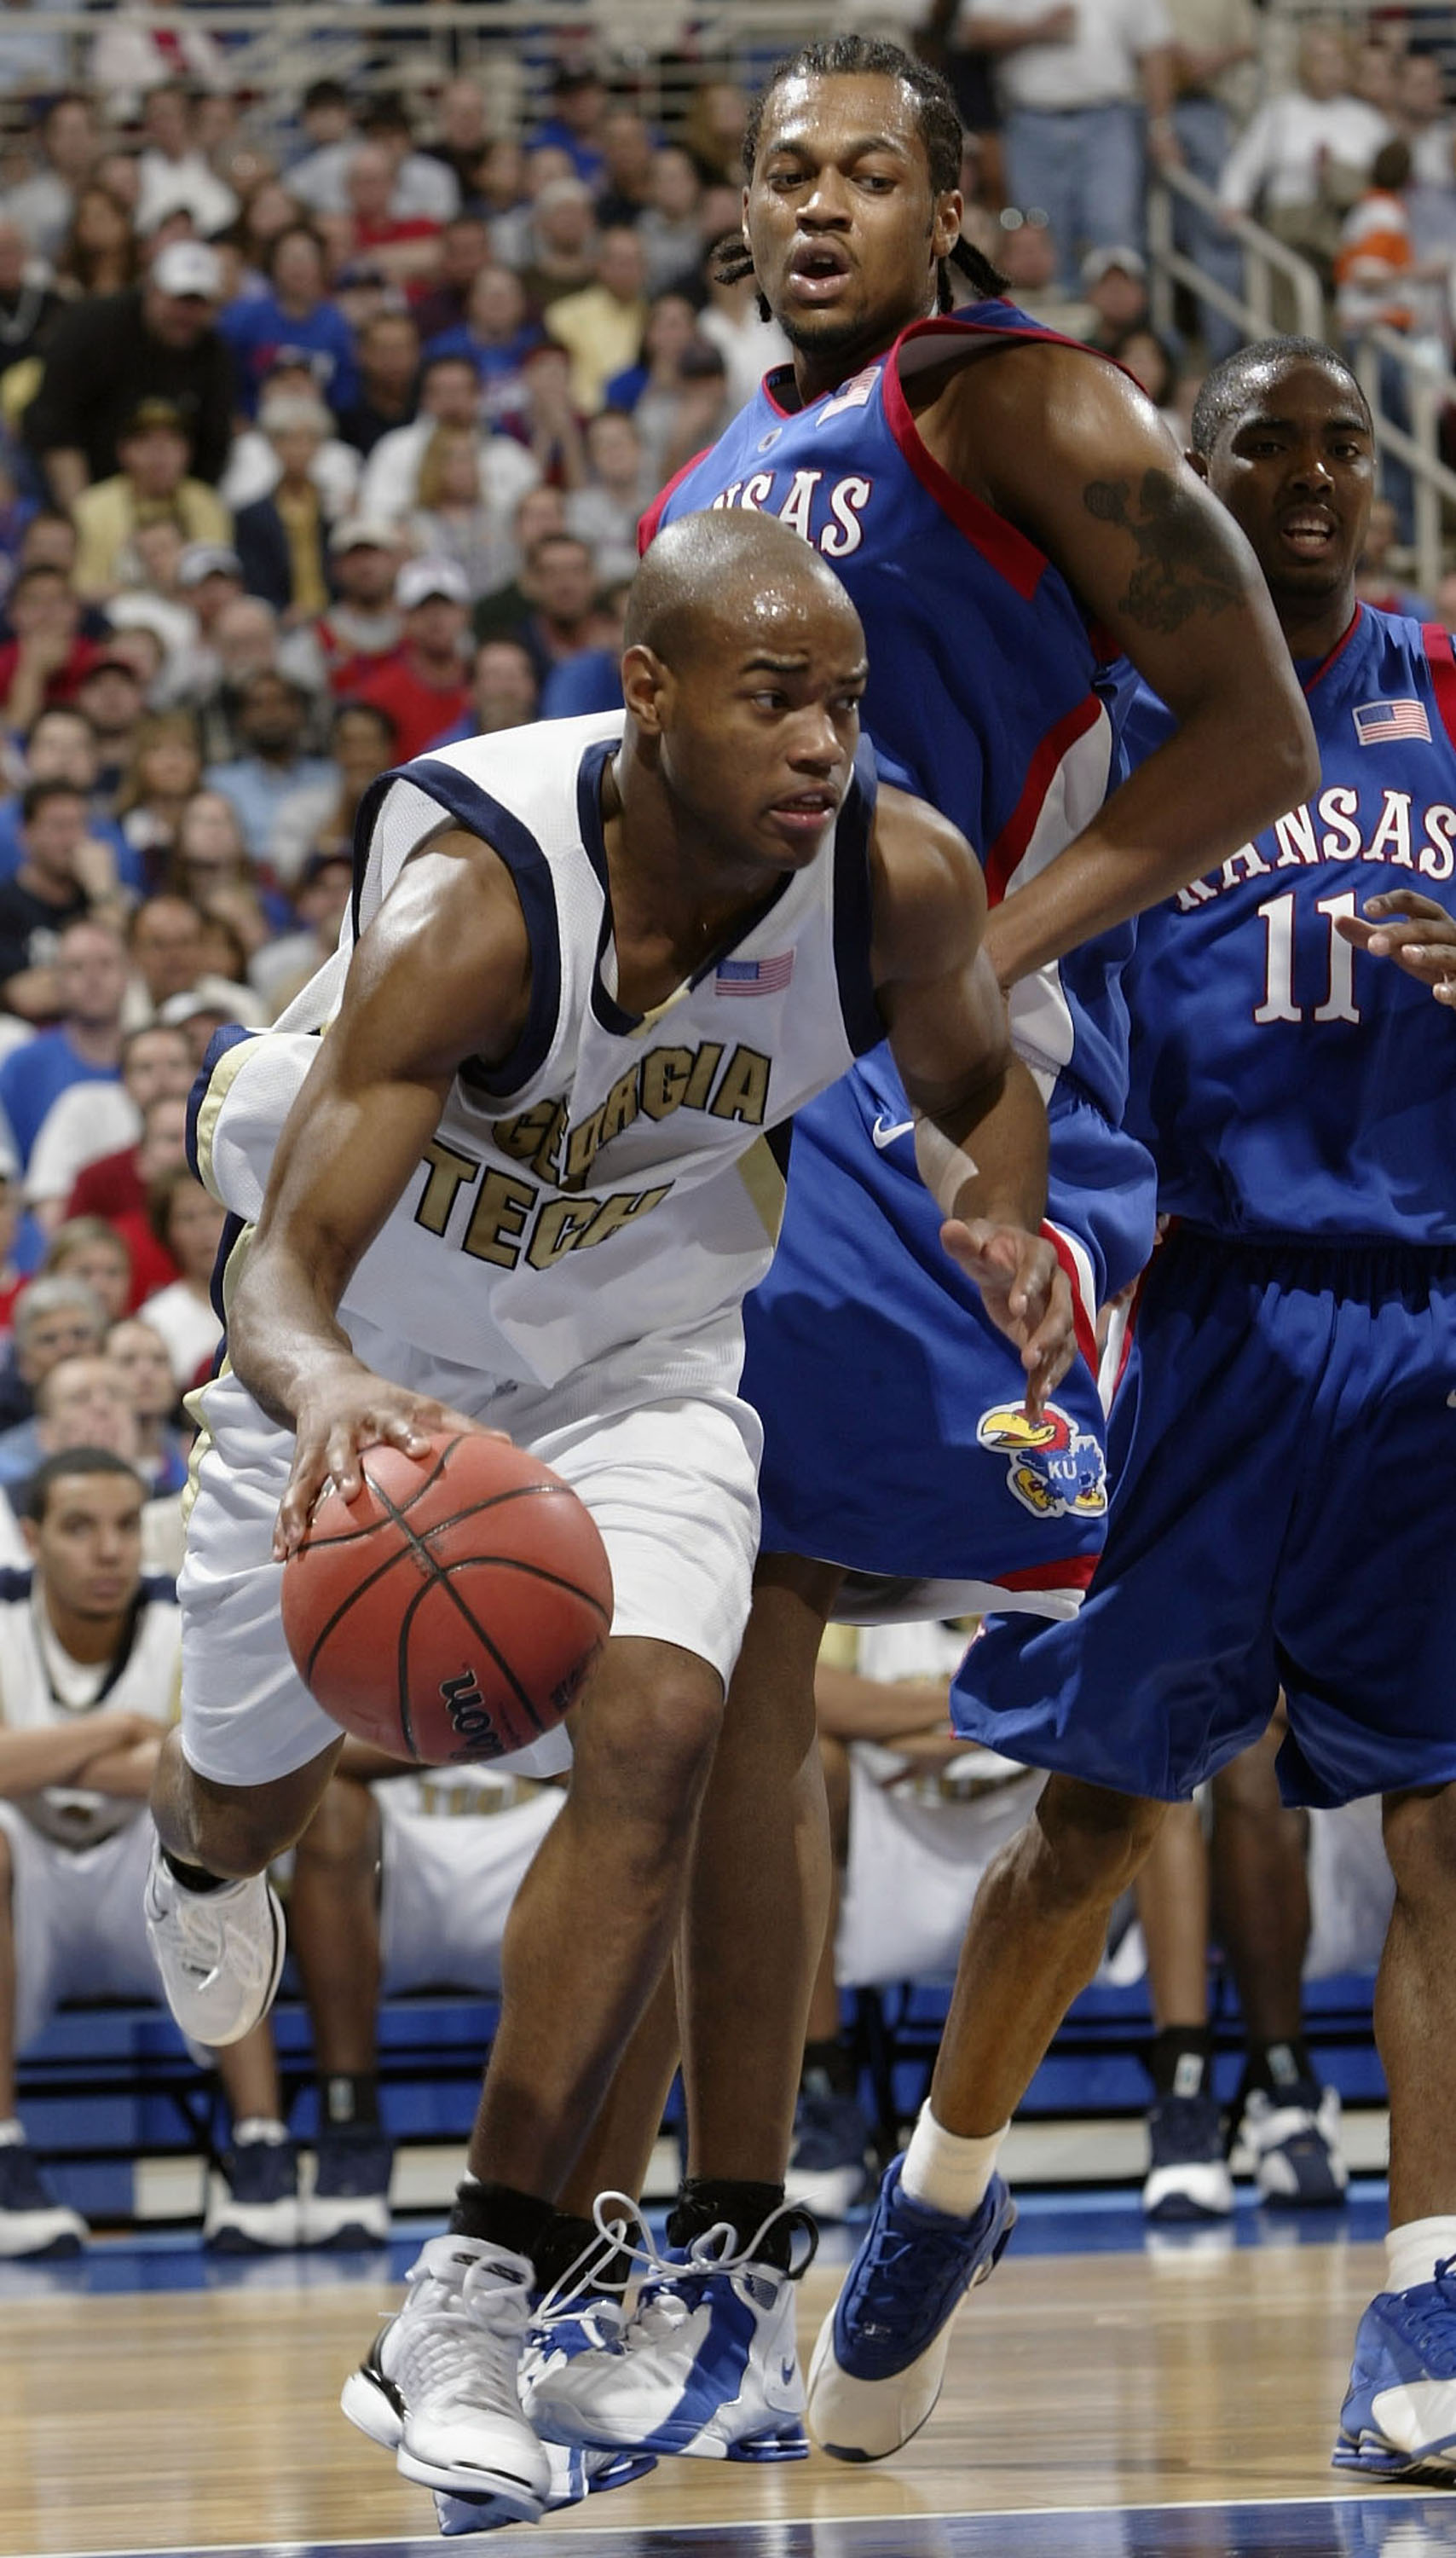 ST. LOUIS - MARCH 28: Jarrett Jack #3 of the Georgia Tech Yellow Jackets drives past Jeff Graves #42 of the Kansas Jayhawks during the fourth round game of the NCAA Division I Men's Basketball Tournament at the Edward Jones Dome on March 28, 2004 in St. L